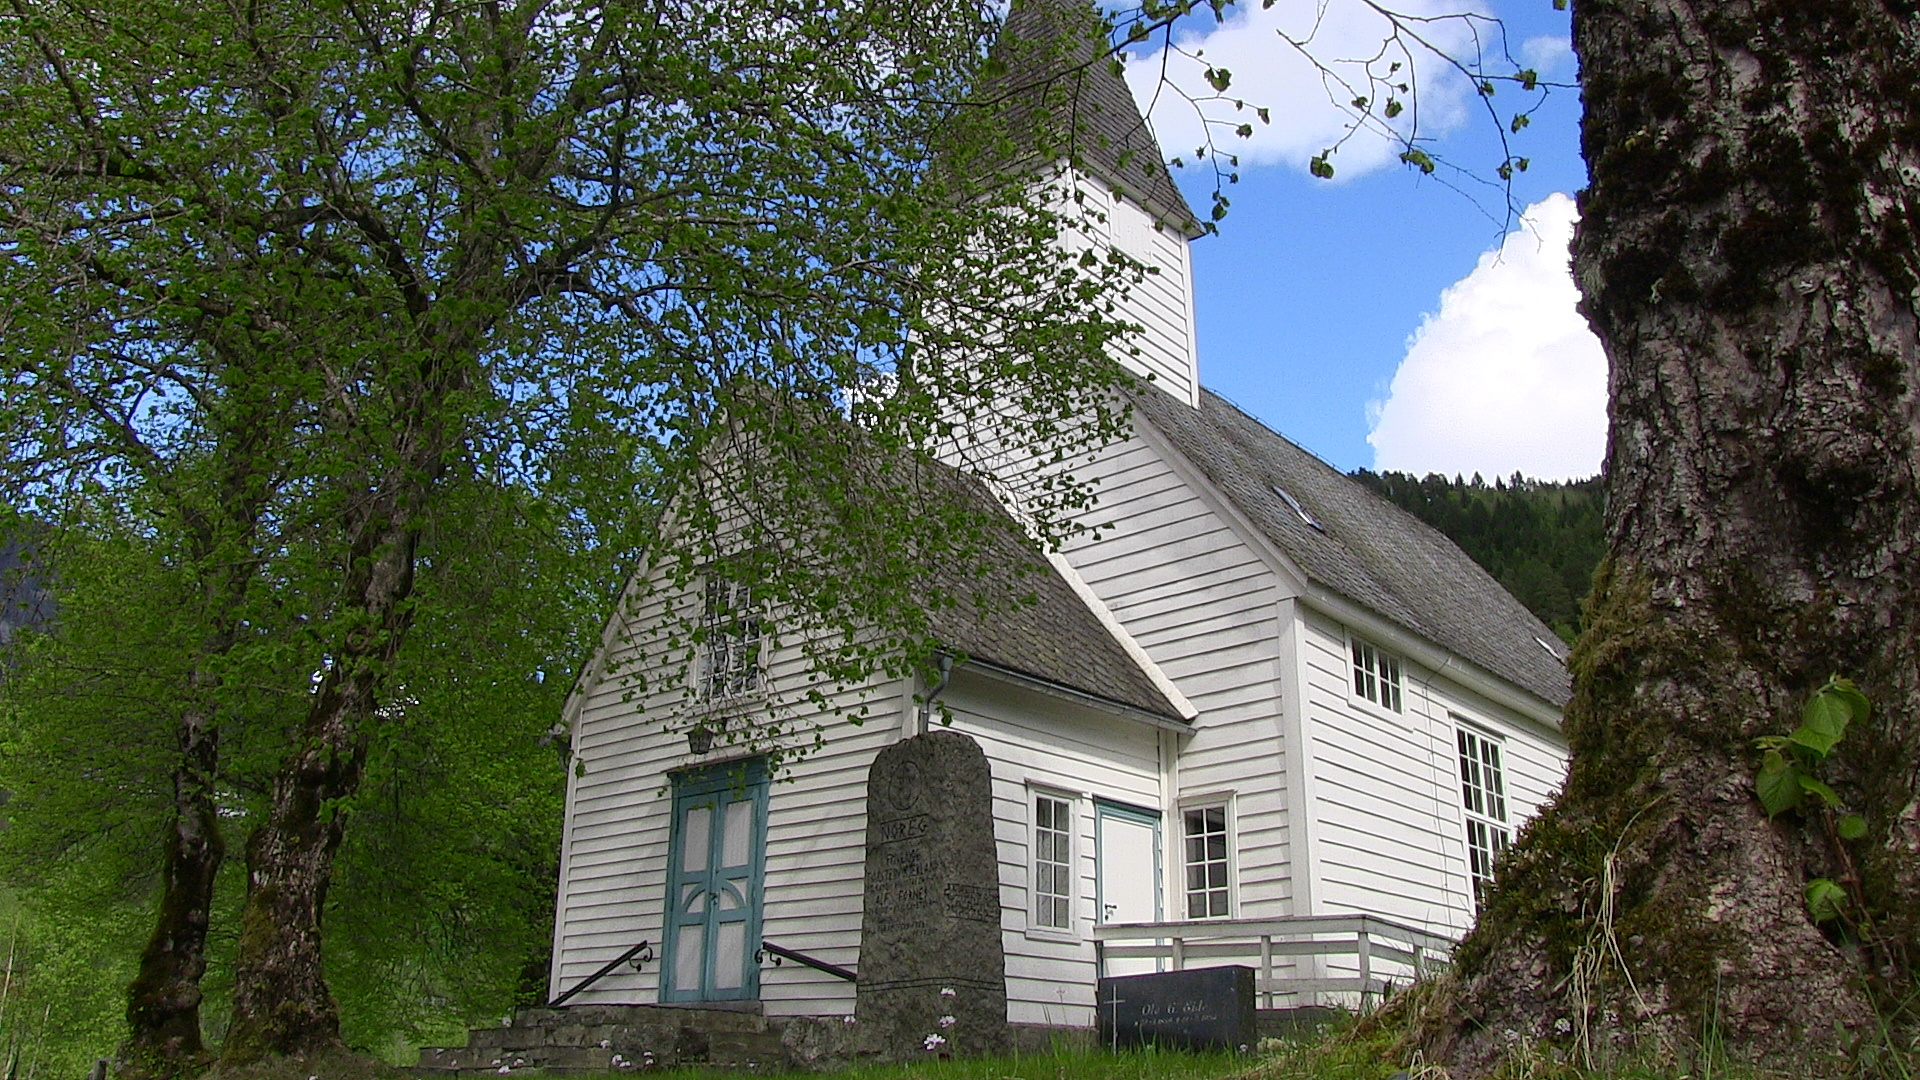 Granvin Church, built in 1726, designated as a Norwegian cultural heritage site in 2012.  © Anne Gullbjørg Digranes